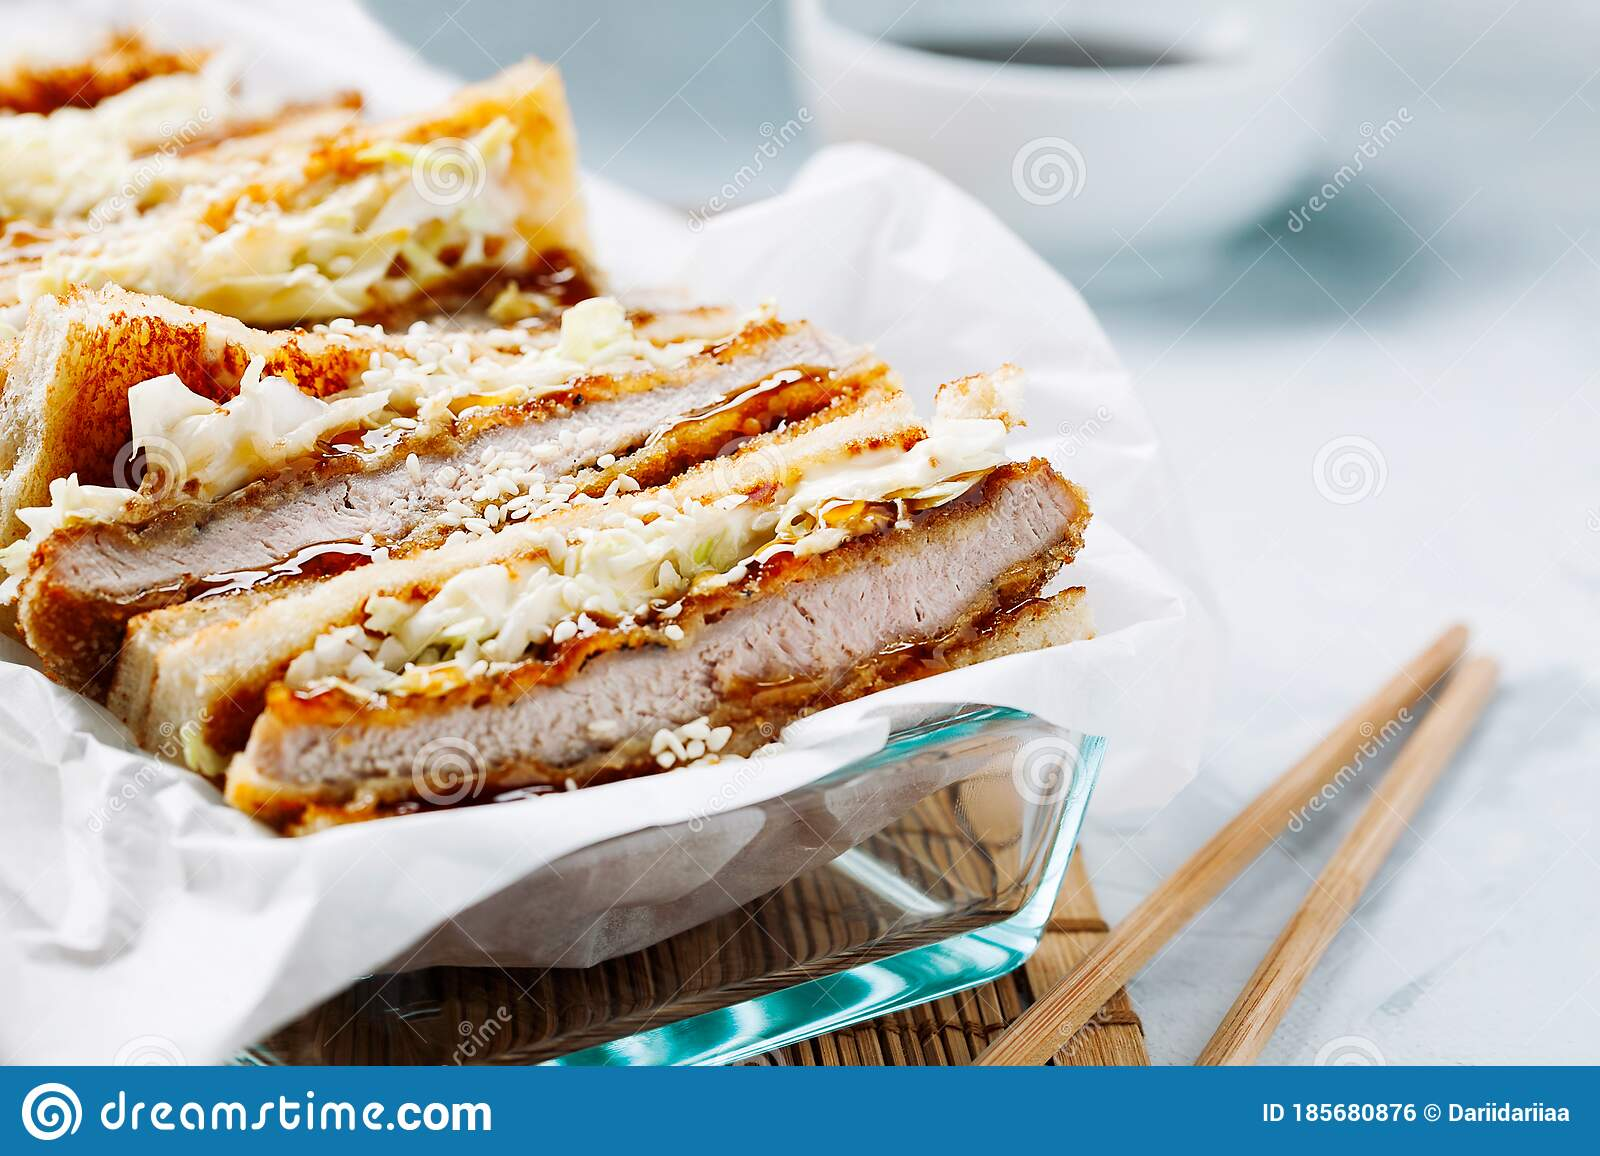 Katsu Sando Japanese Cutlet Sandwich With Deep Fried  Pork,cabbage,mayonnaise And Tonkatsu Sauce On A Light Background Stock  Photo - Image of chop, lunch: 185680876